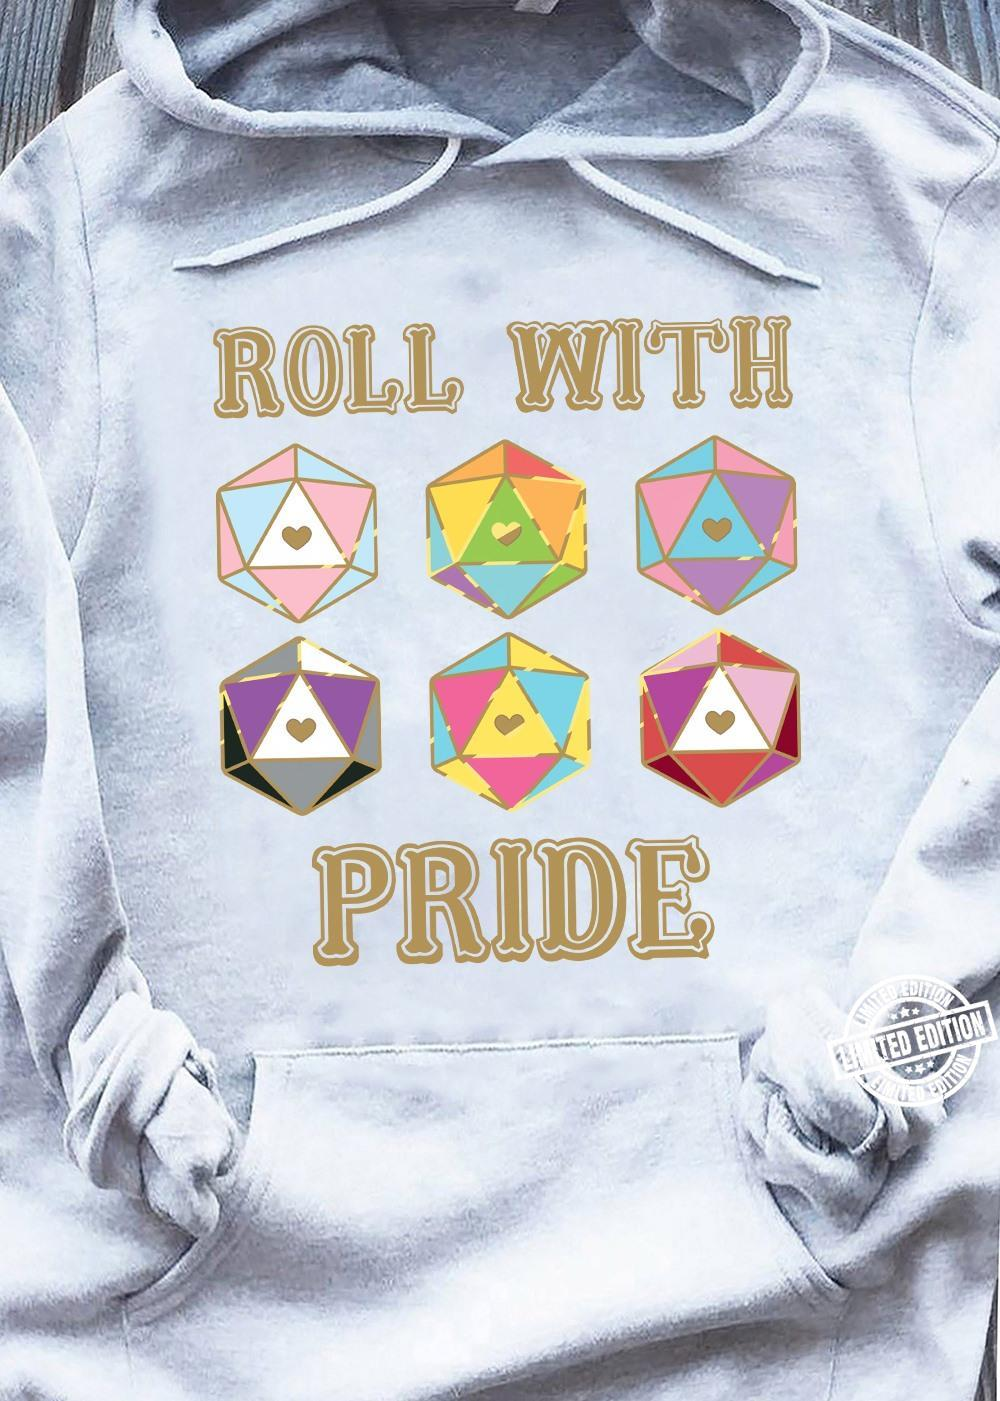 Roll with pride shirt